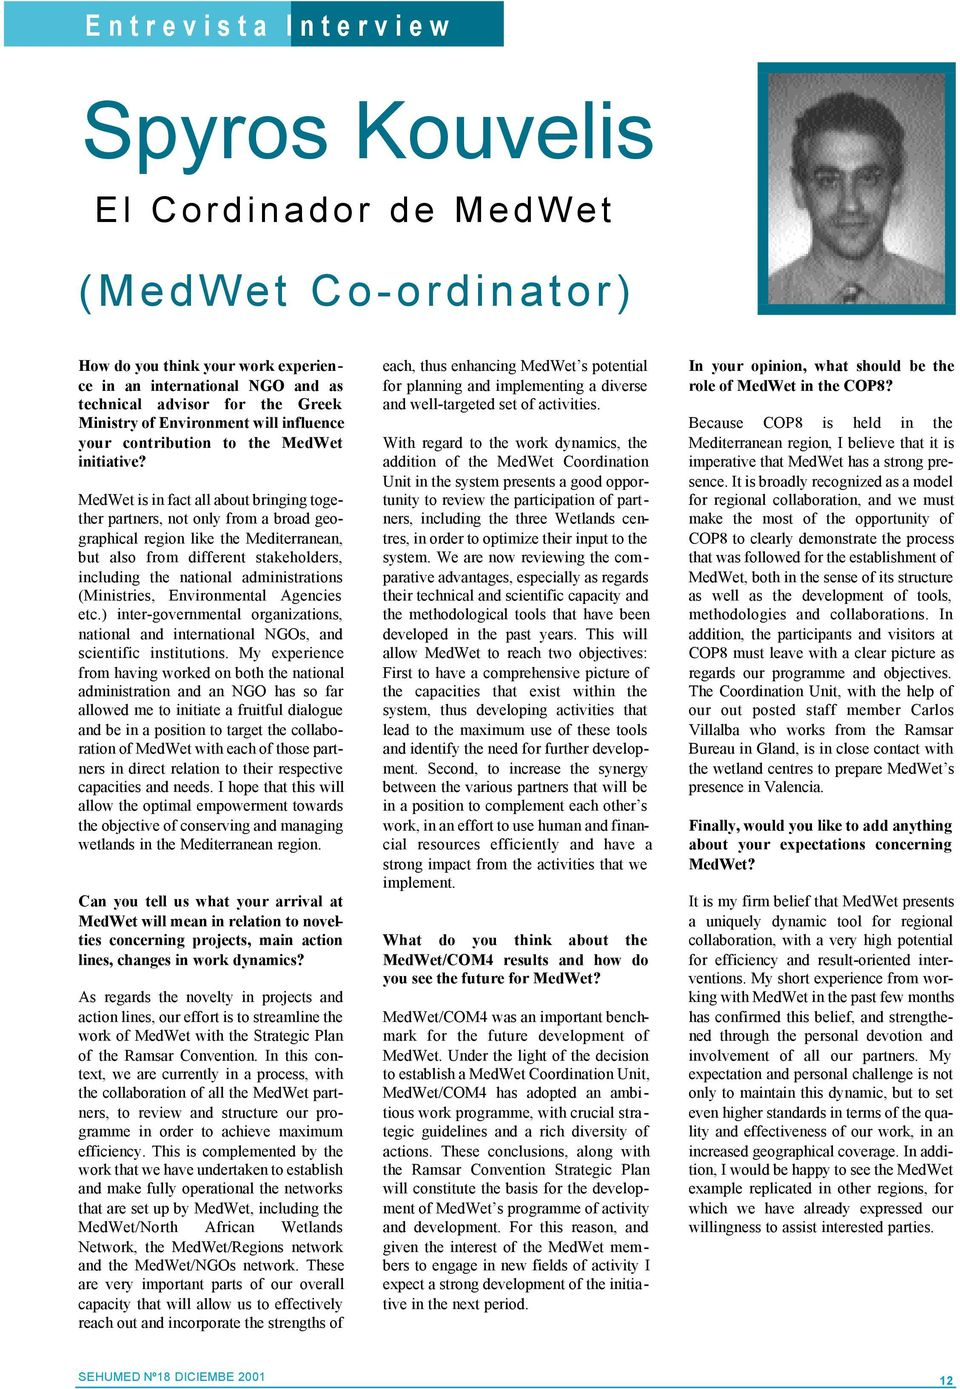 MedWet is in fact all about bringing together partners, not only from a broad geographical region like the Mediterranean, but also from different stakeholders, including the national administrations